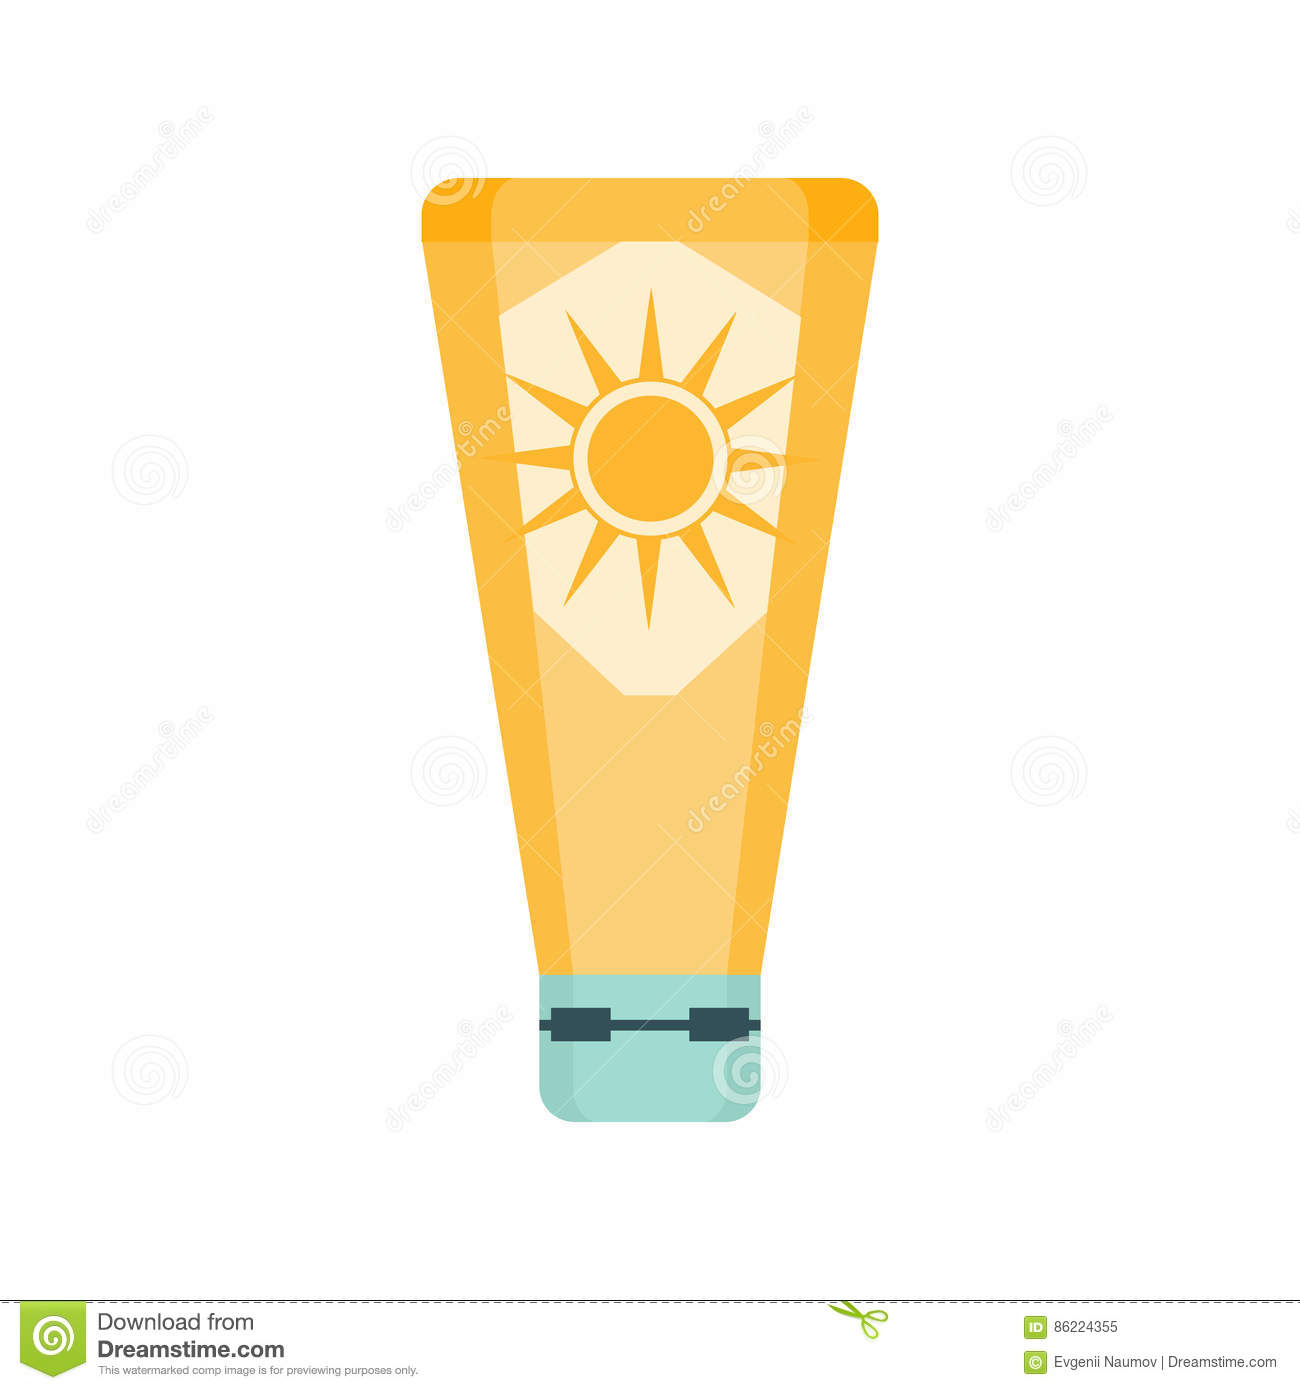 Sunscreen Cream Cosmetic Product In Yellow Bottle, Part Of Summer Beach Vacation Series Of Illustrations